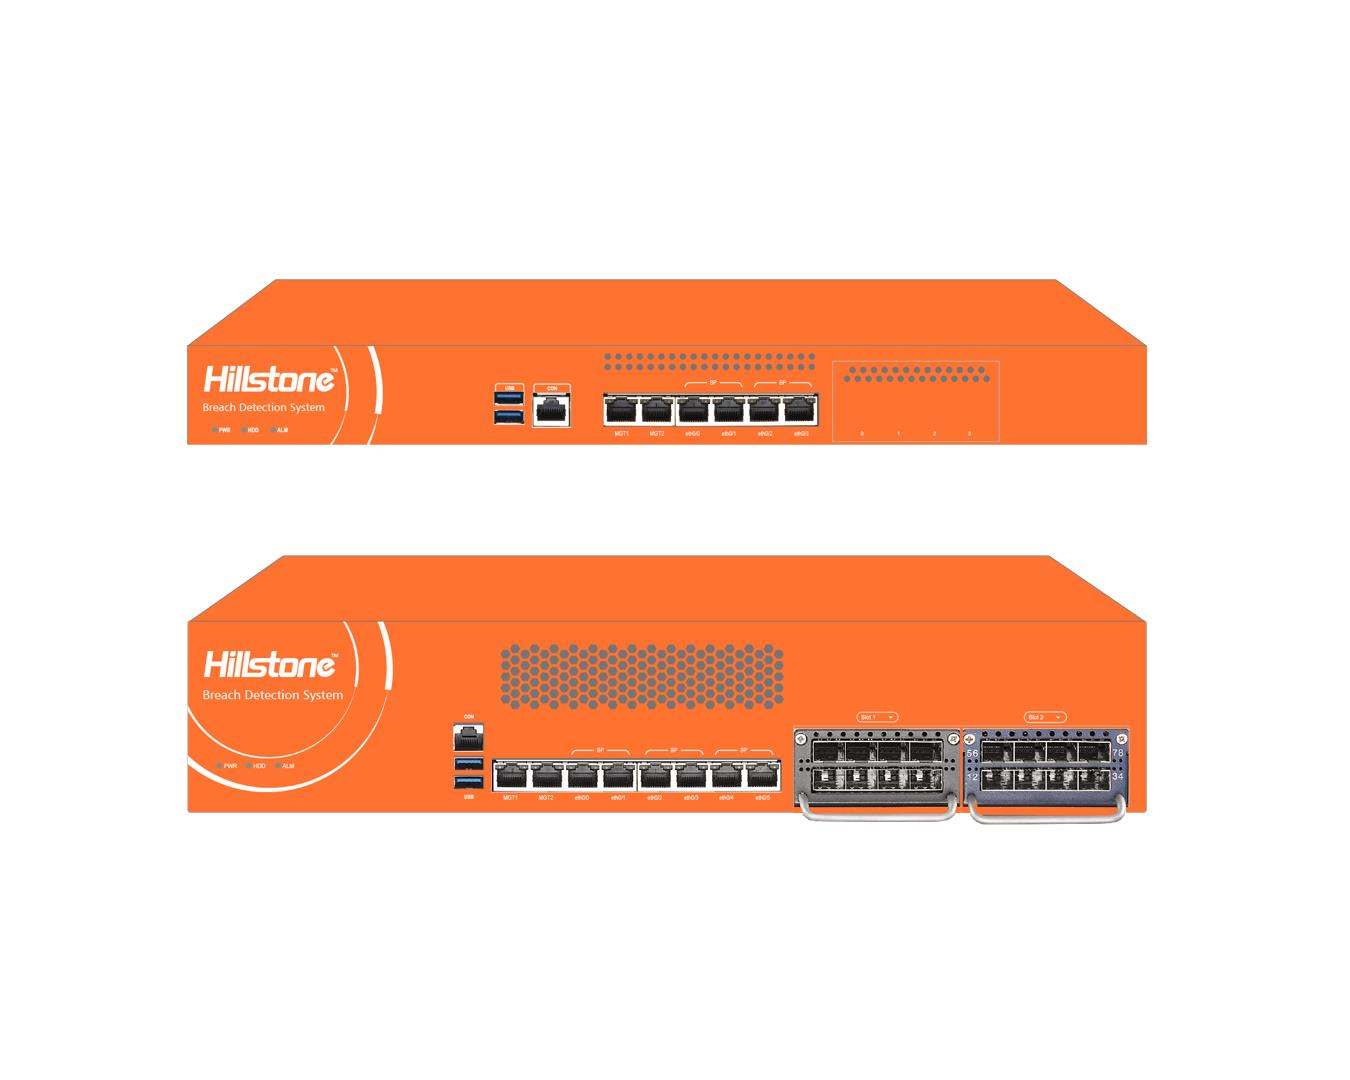 Product picture of Hillstone Server Breach Detection System